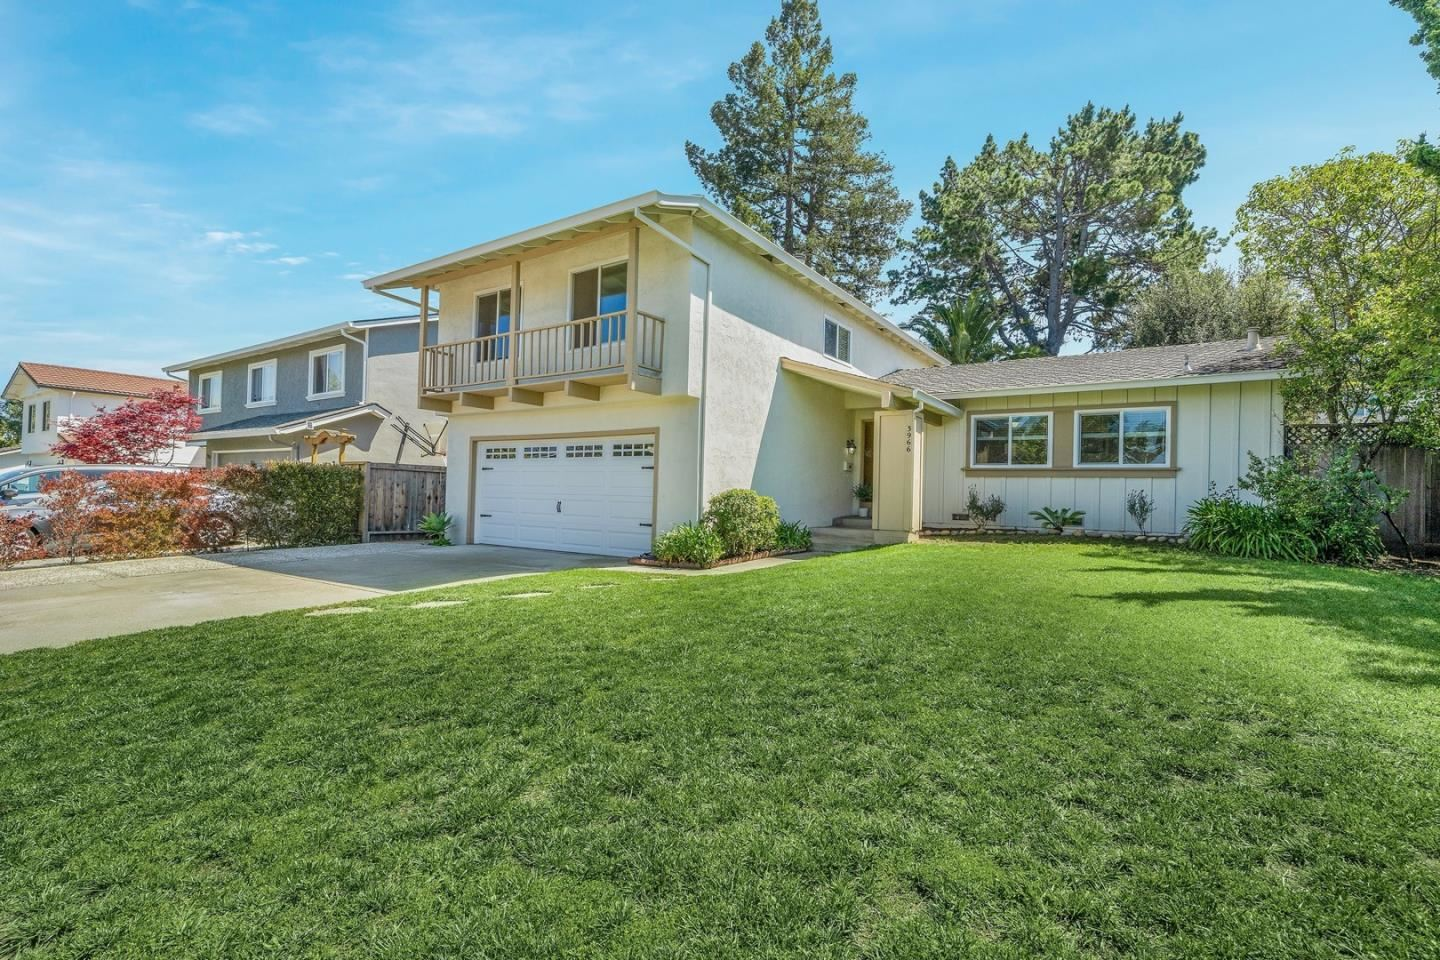 Photo for 3966 Acapulco Drive, CAMPBELL, CA 95008 (MLS # ML81841092)